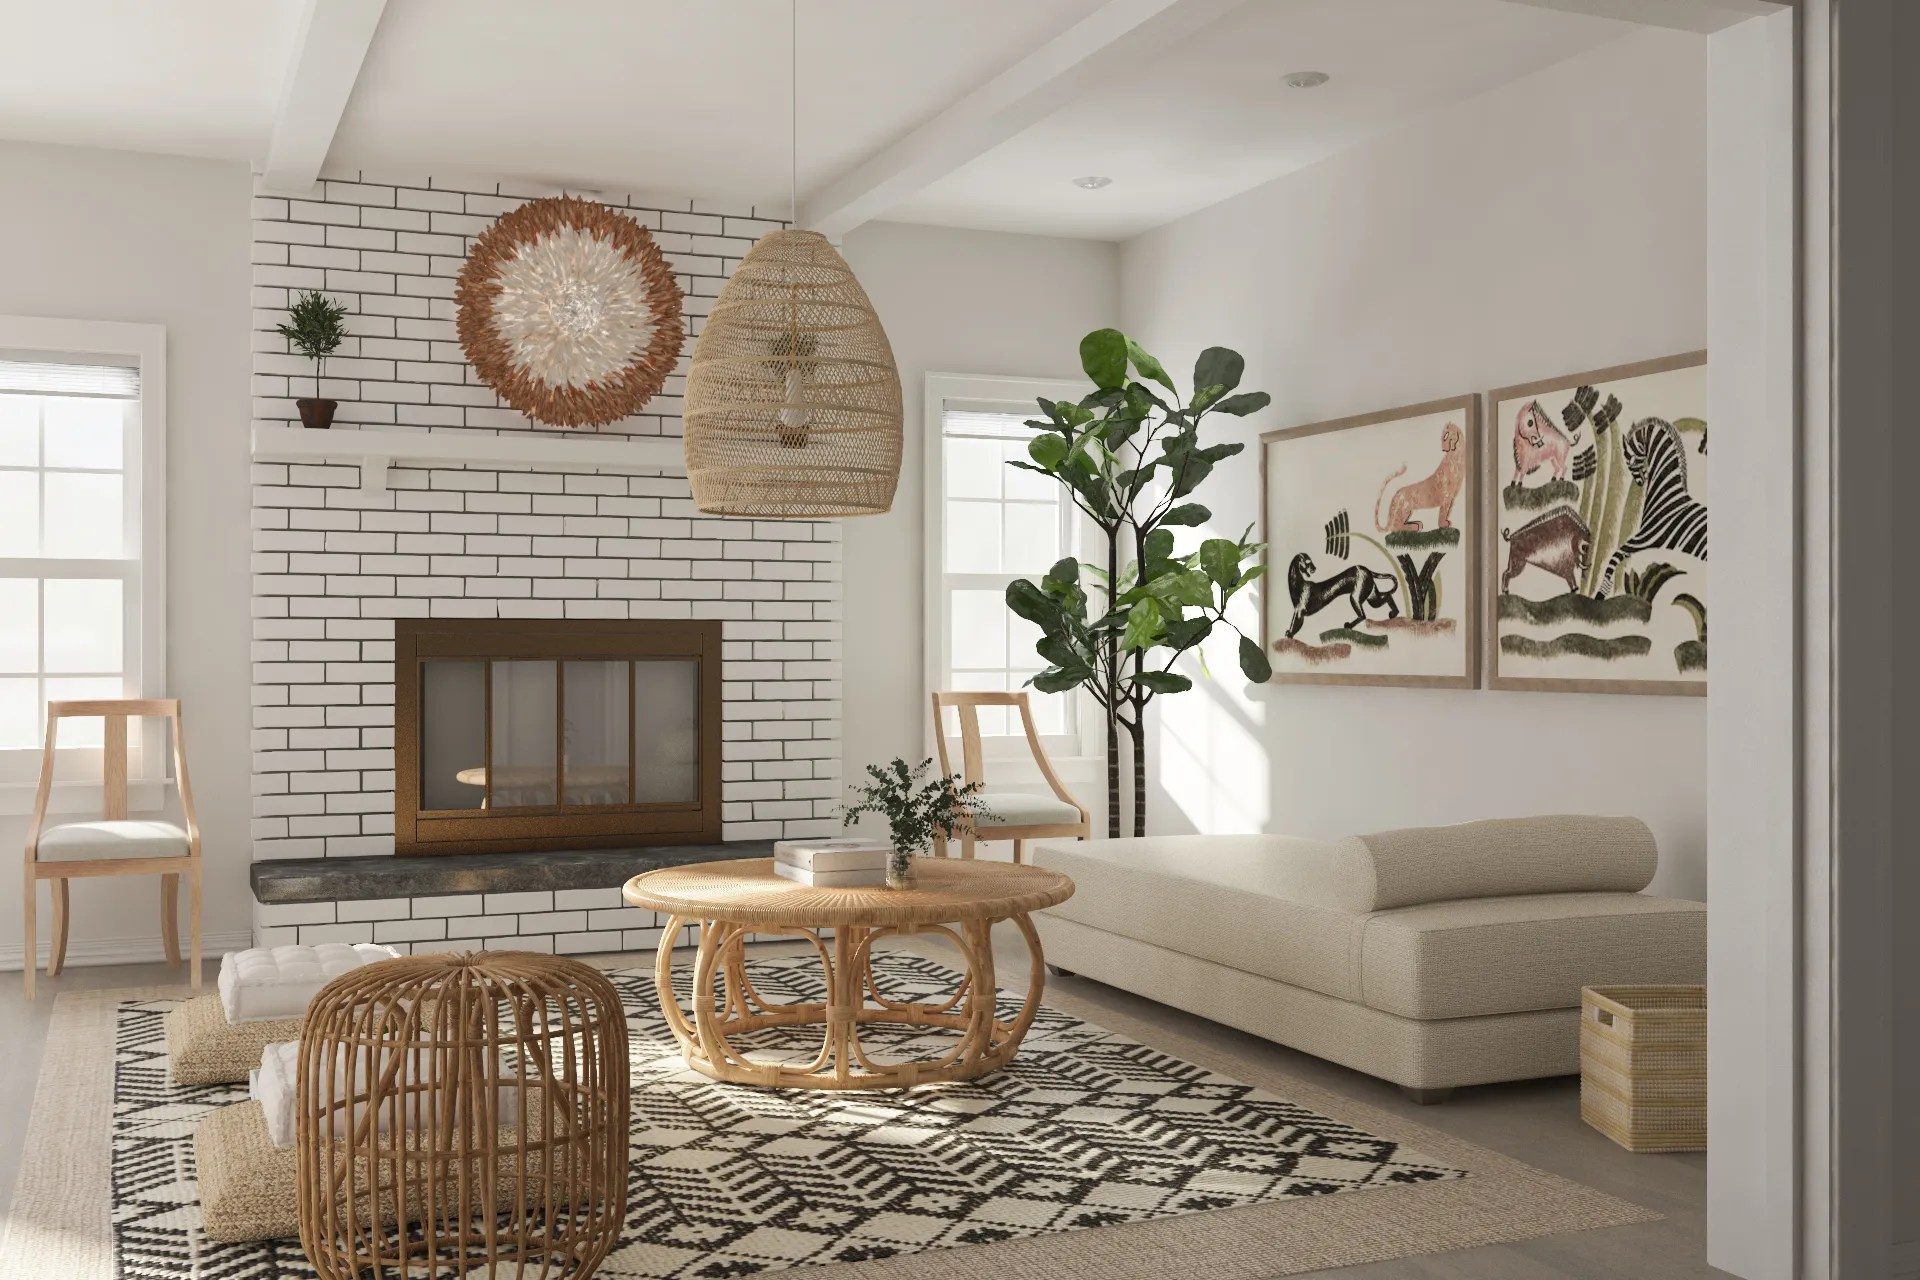 Invigorating How To Design Your Living Room Without A Sofa Architectural Digest Home Interior Design Living Room Photos Living Room Interior Design Photos Bangalore interior Interior Design Living Room Photos